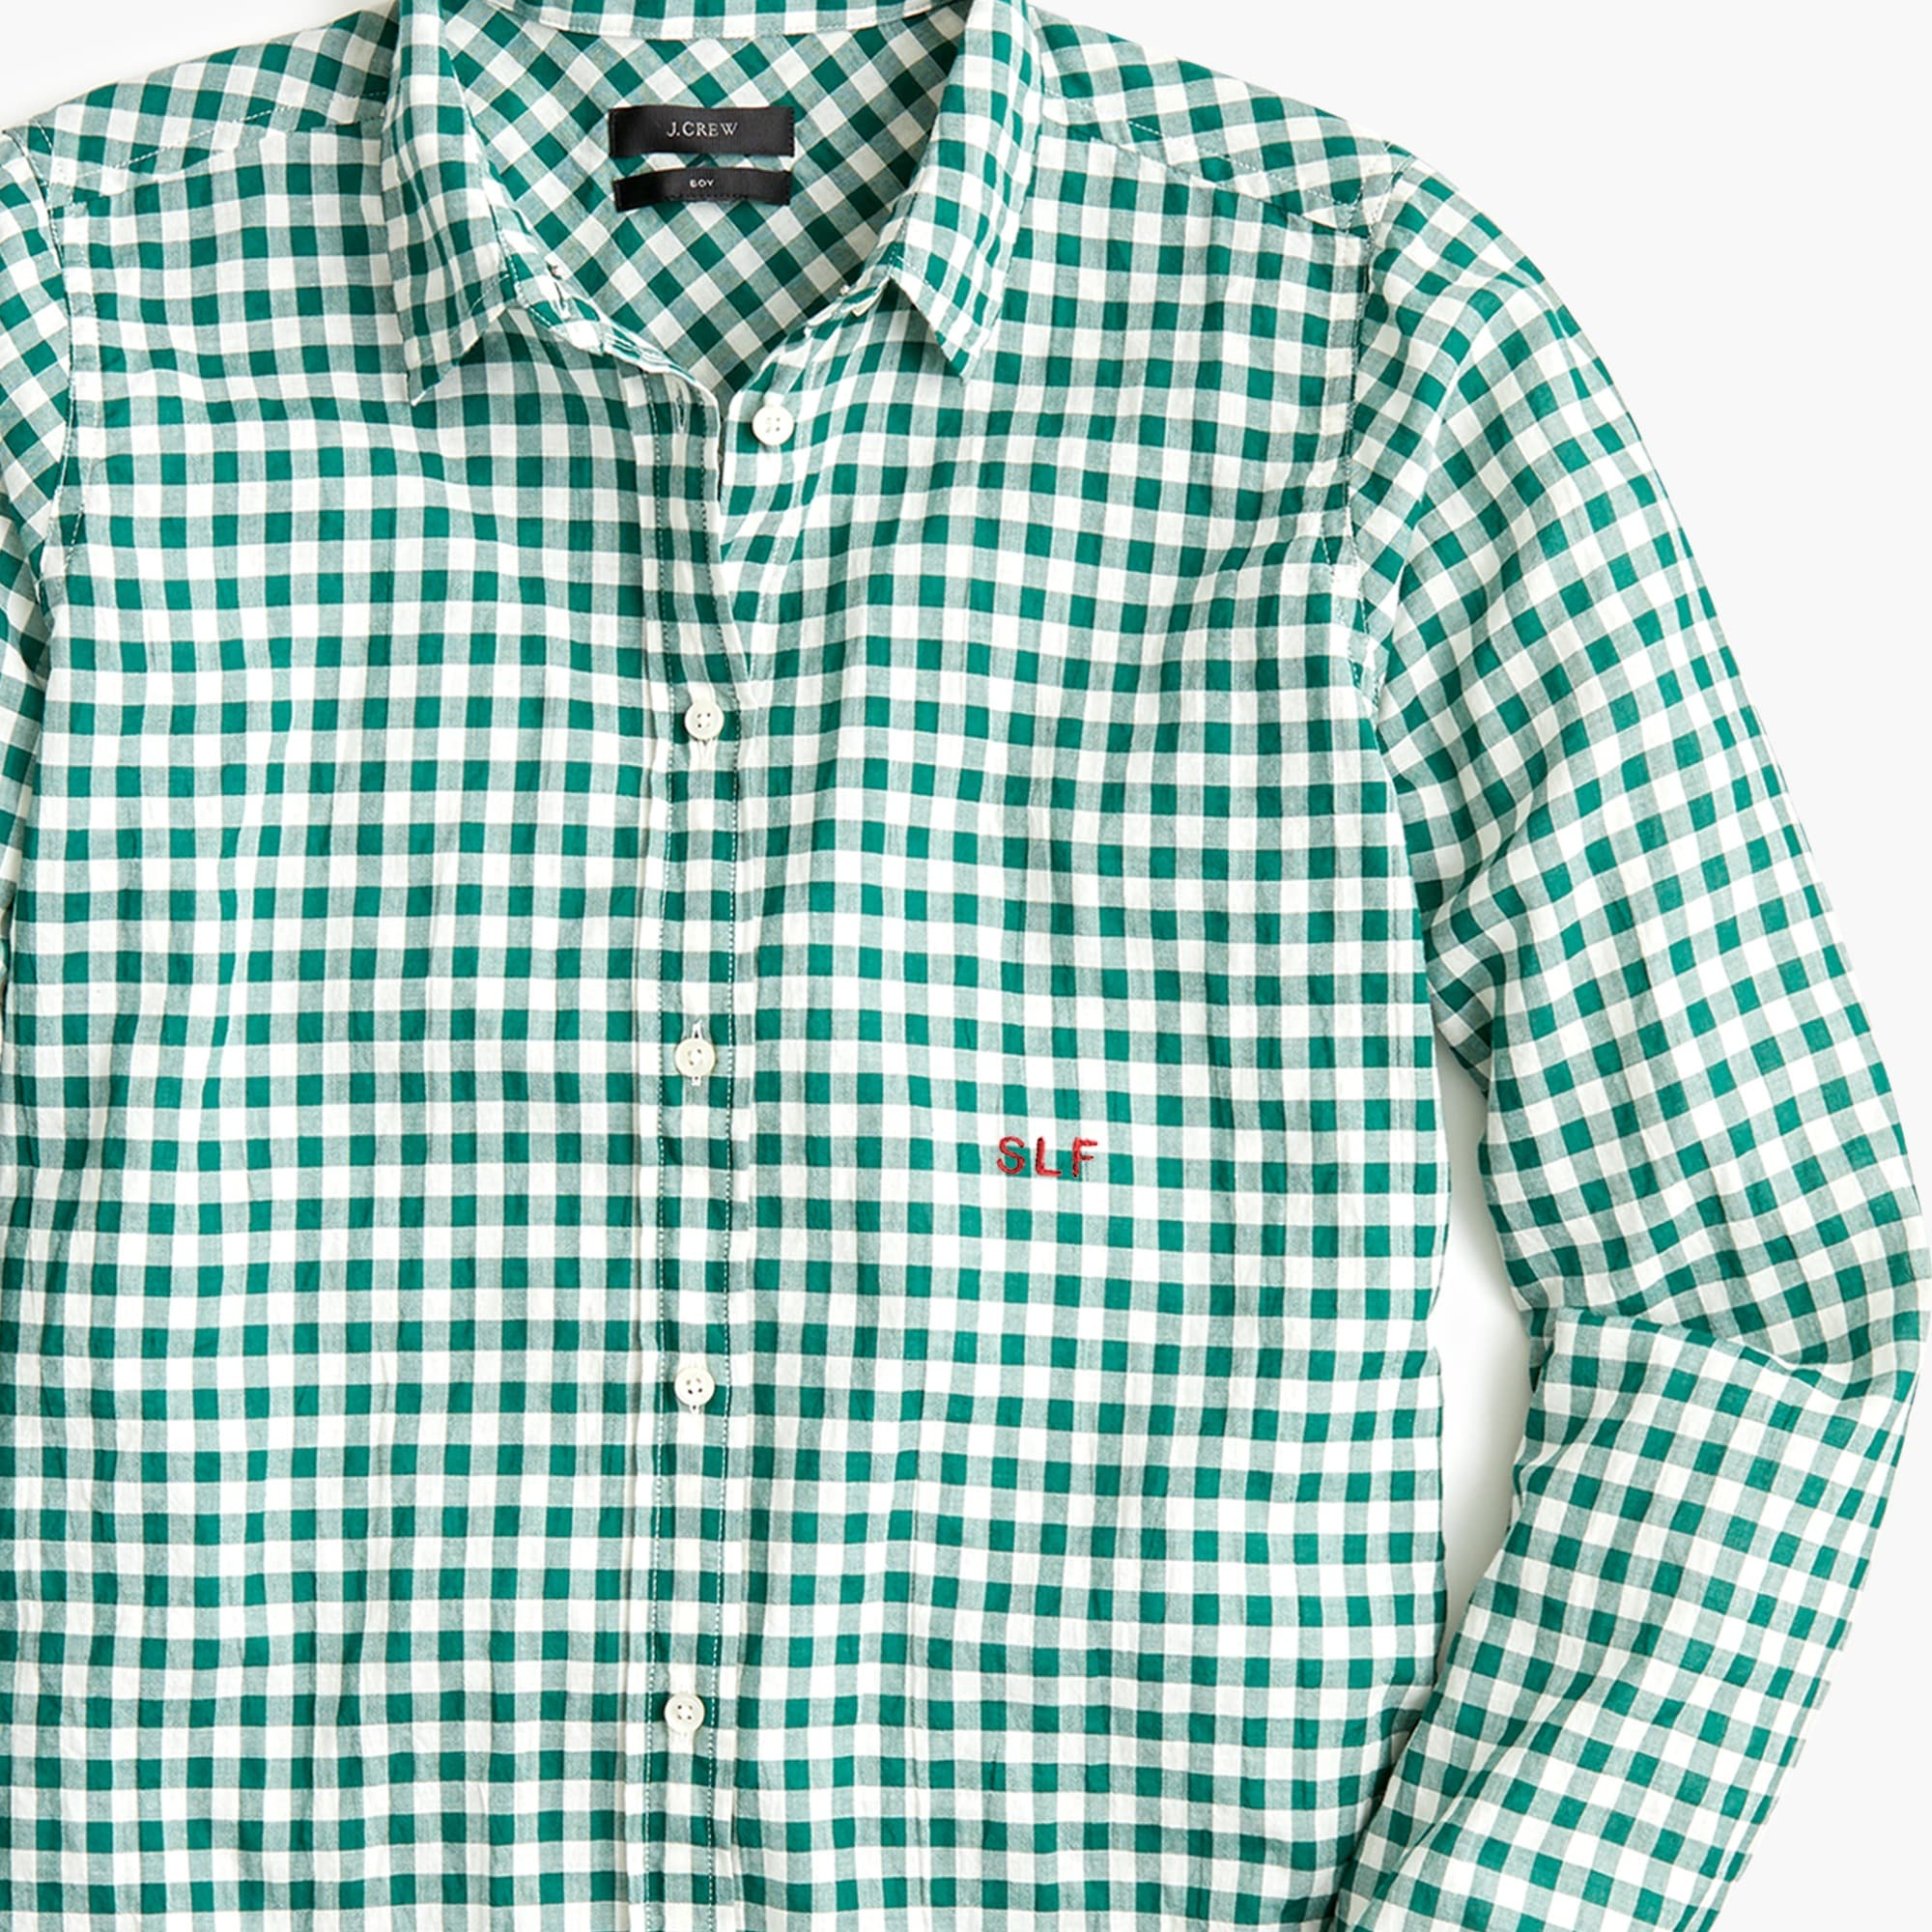 Image 7 for Classic-fit boy shirt in crinkle gingham